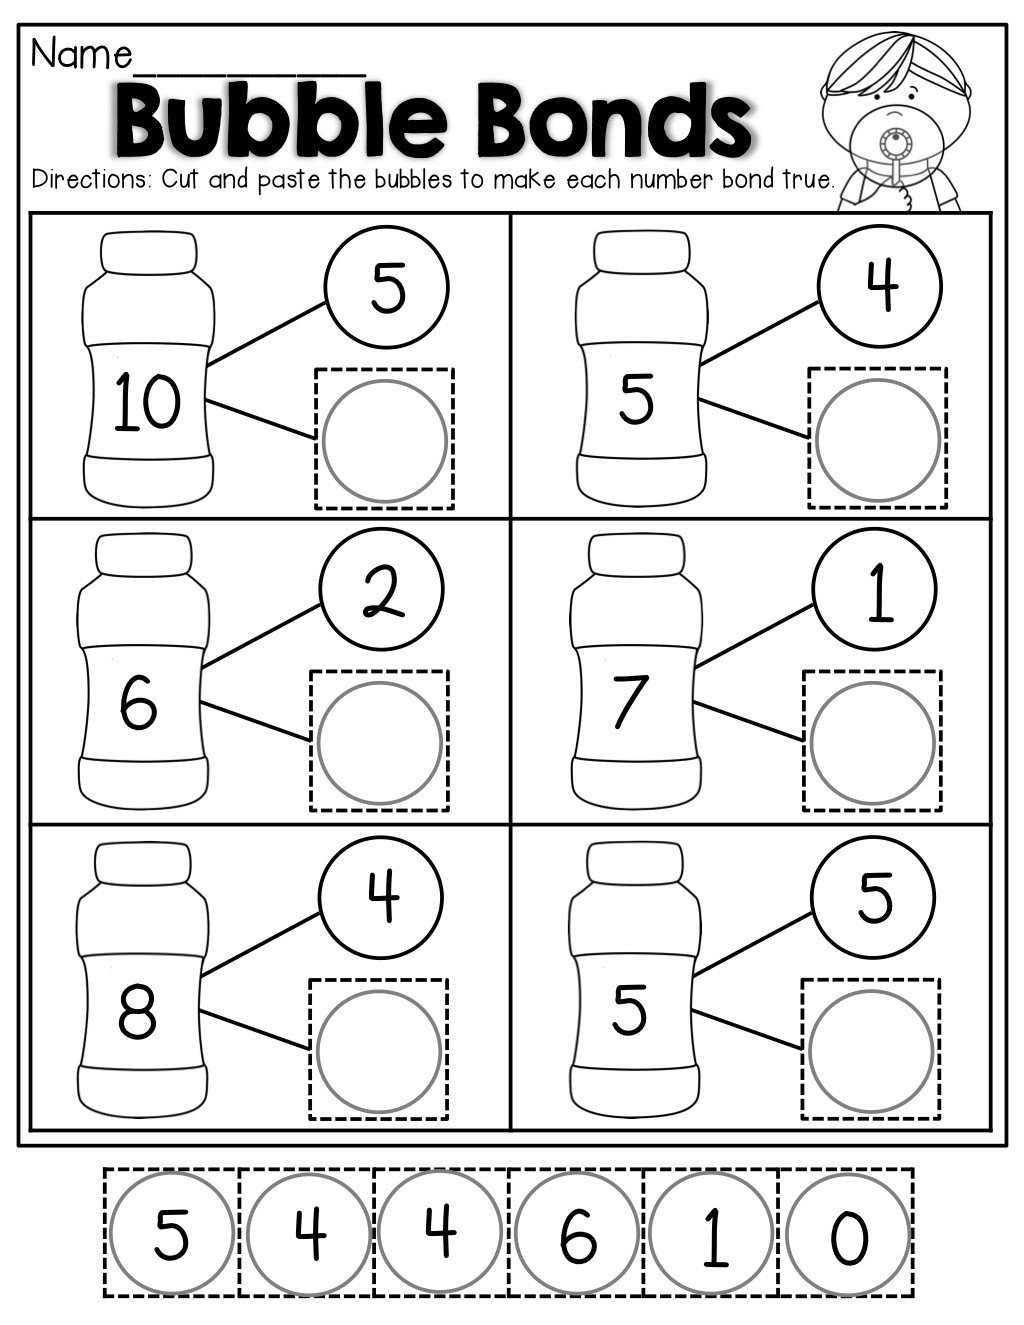 Kindergarten Number Bonds Worksheets 20 Number Bonds Kindergarten Worksheets